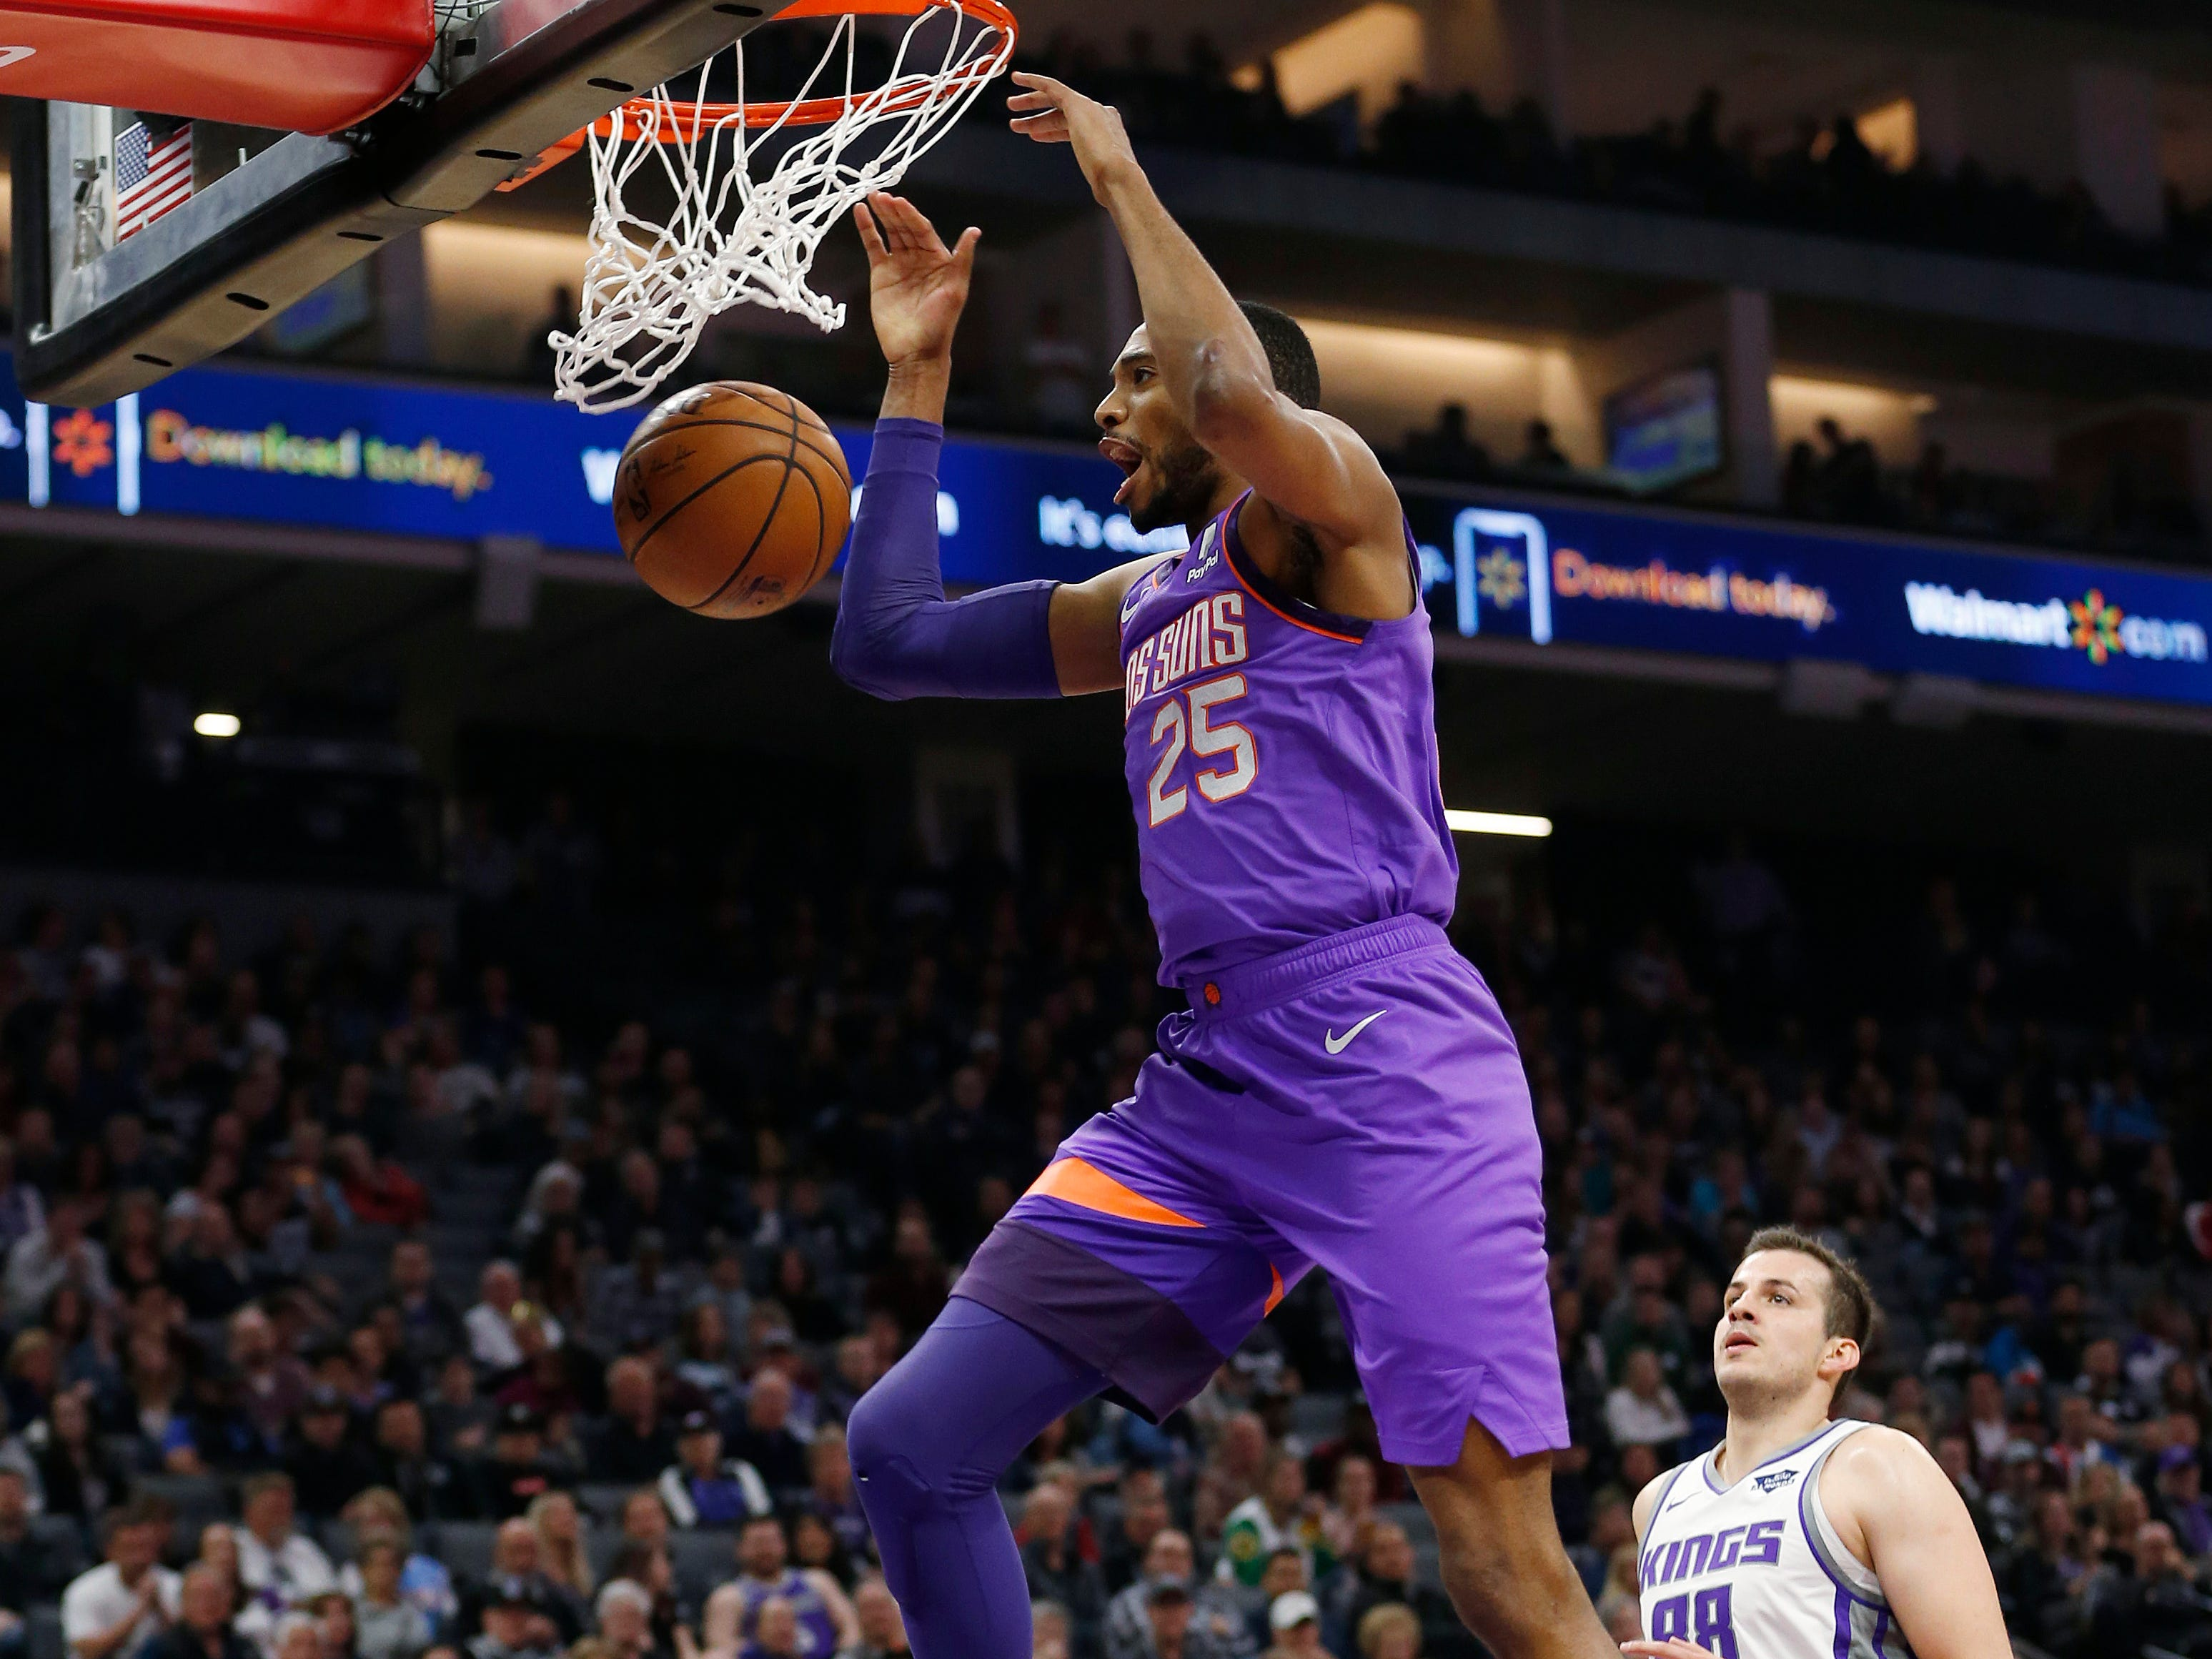 Phoenix Suns forward Mikal Bridges dunks as Sacramento Kings forward Nemanja Bjelica watches during the first quarter of an NBA basketball game Saturday, March 23, 2019, in Sacramento, Calif.